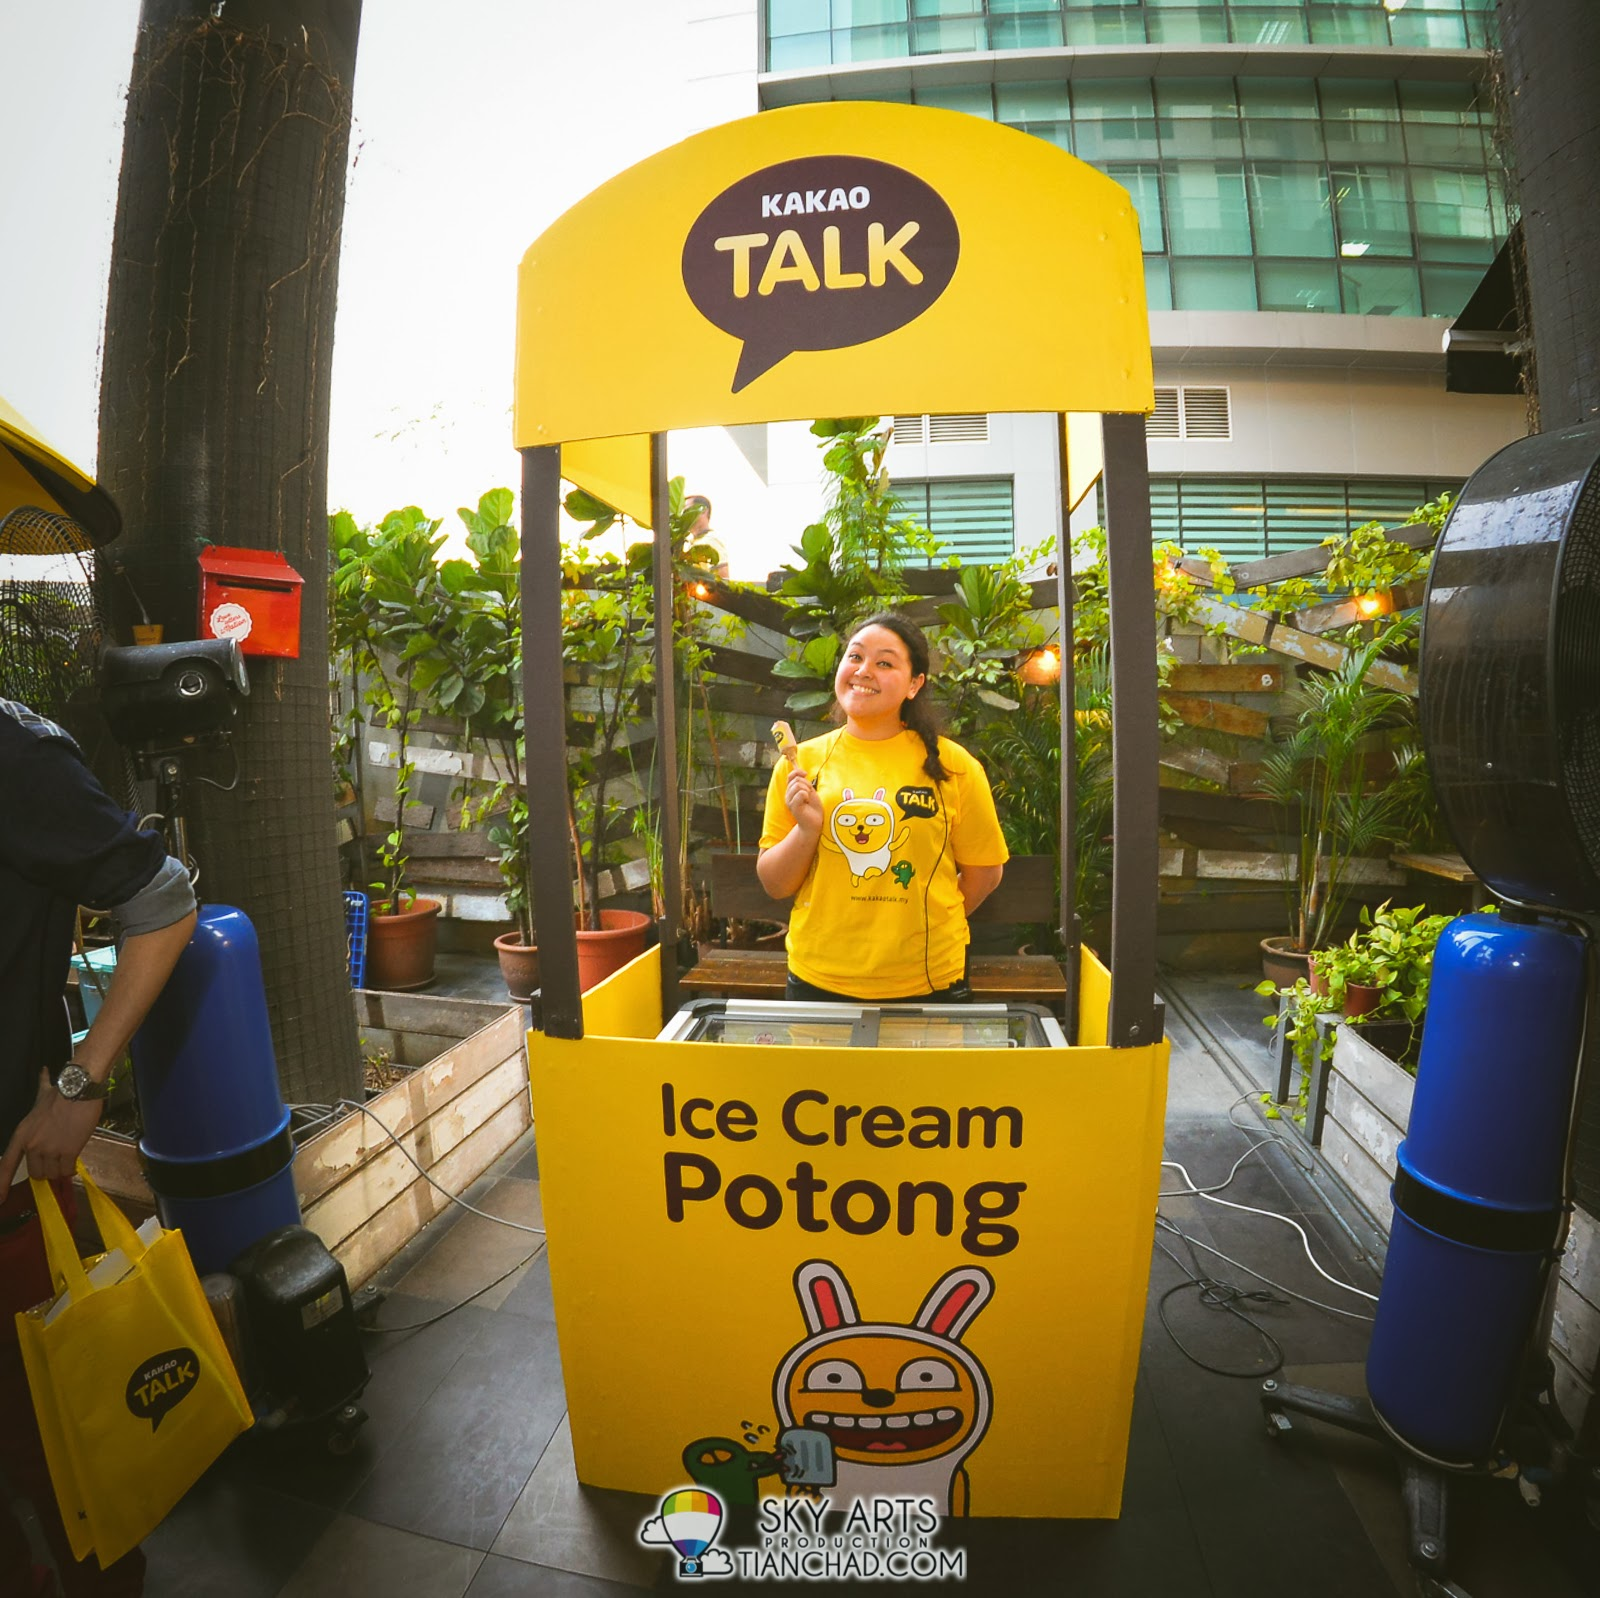 Ice-cream Potong @ KakaoTalk Malaysia Epic Launch , The Bee Publika